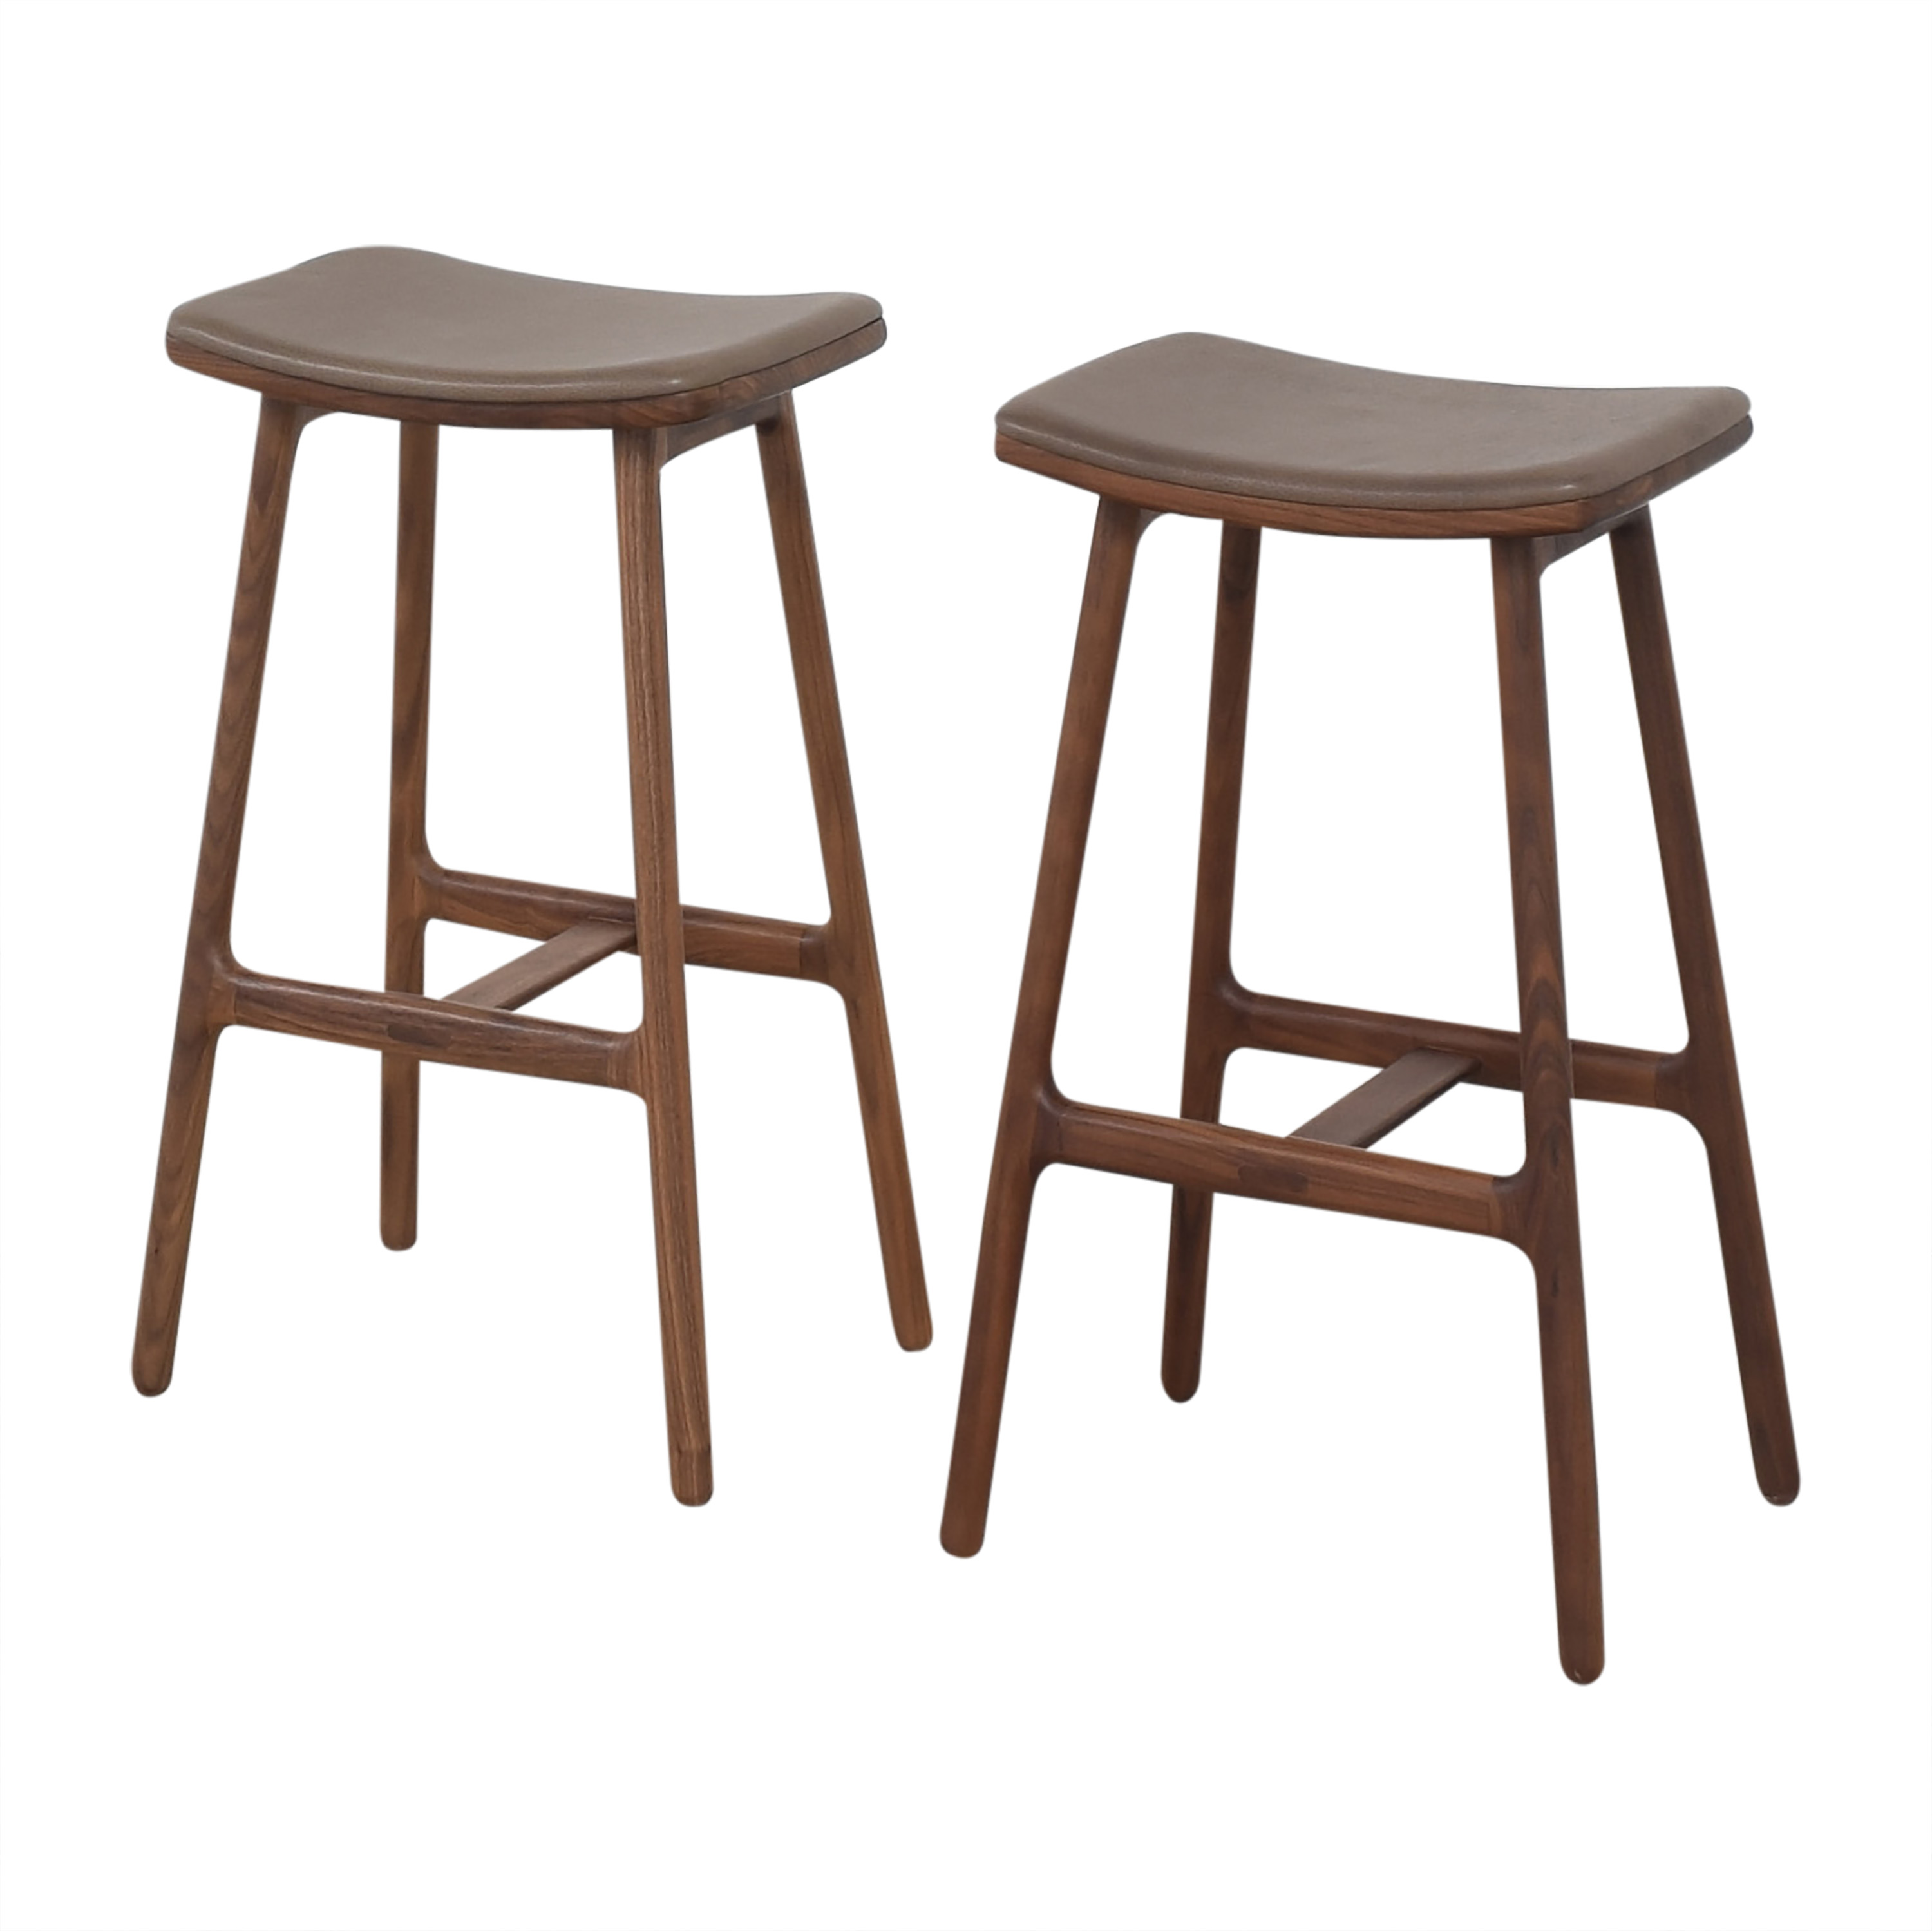 Article Article Esse Canyon Counter Stools dimensions